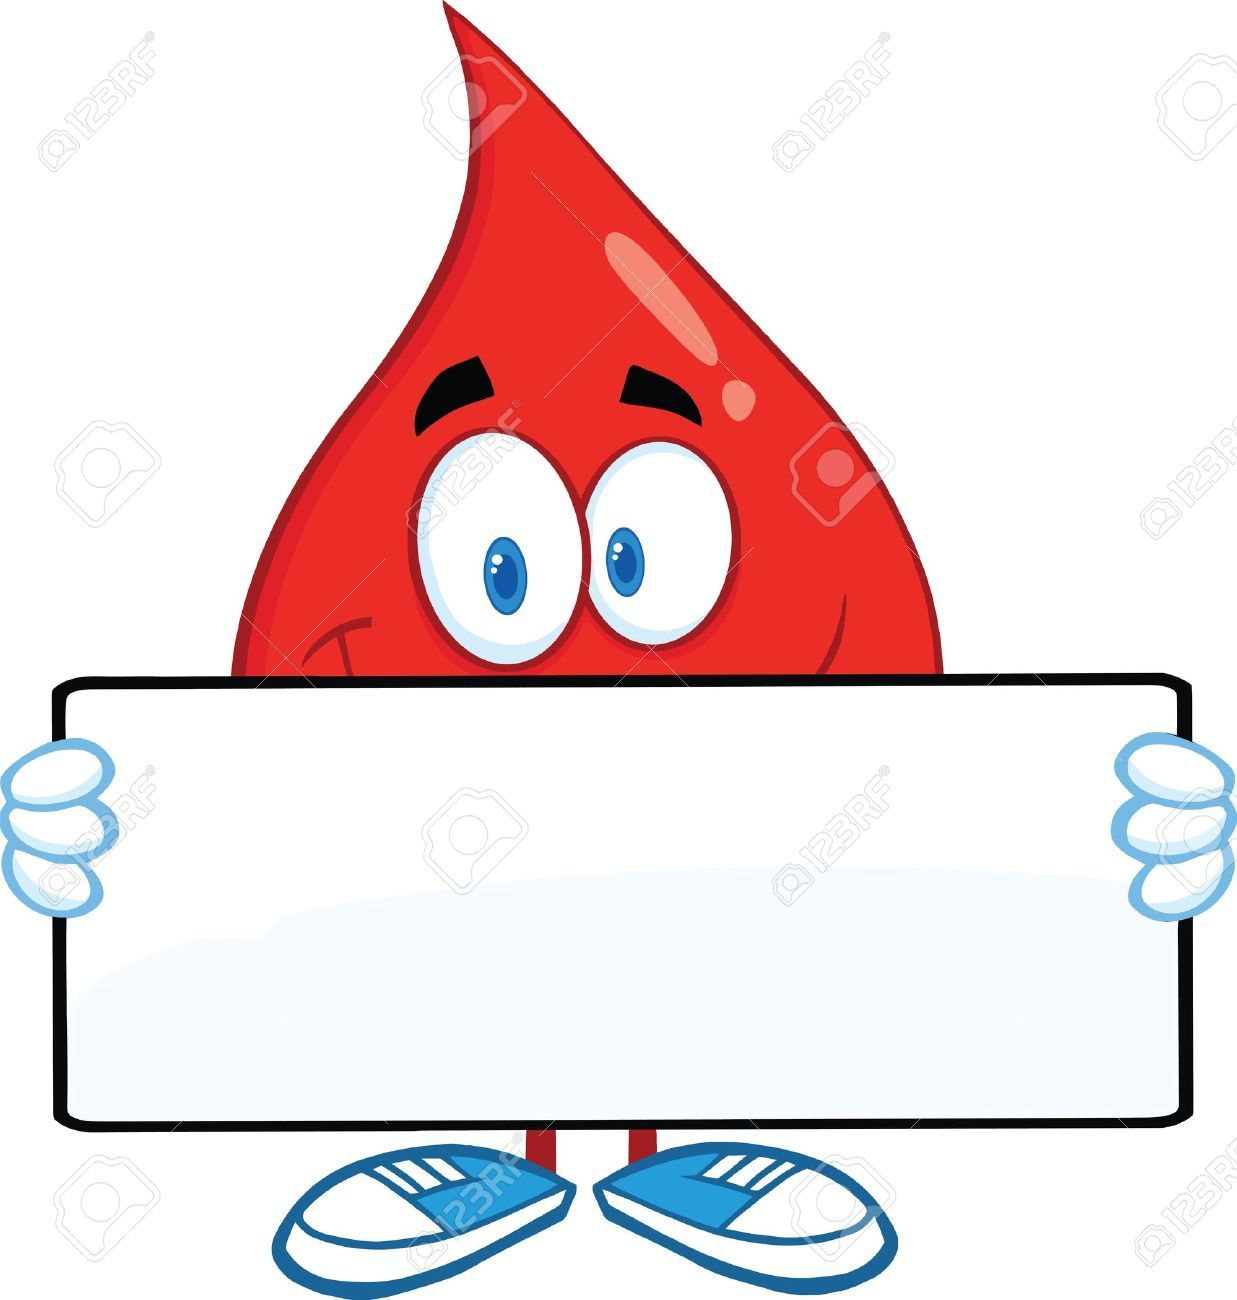 to use as a main graphic this image could be effective to draw a blood donation google kereseacutes